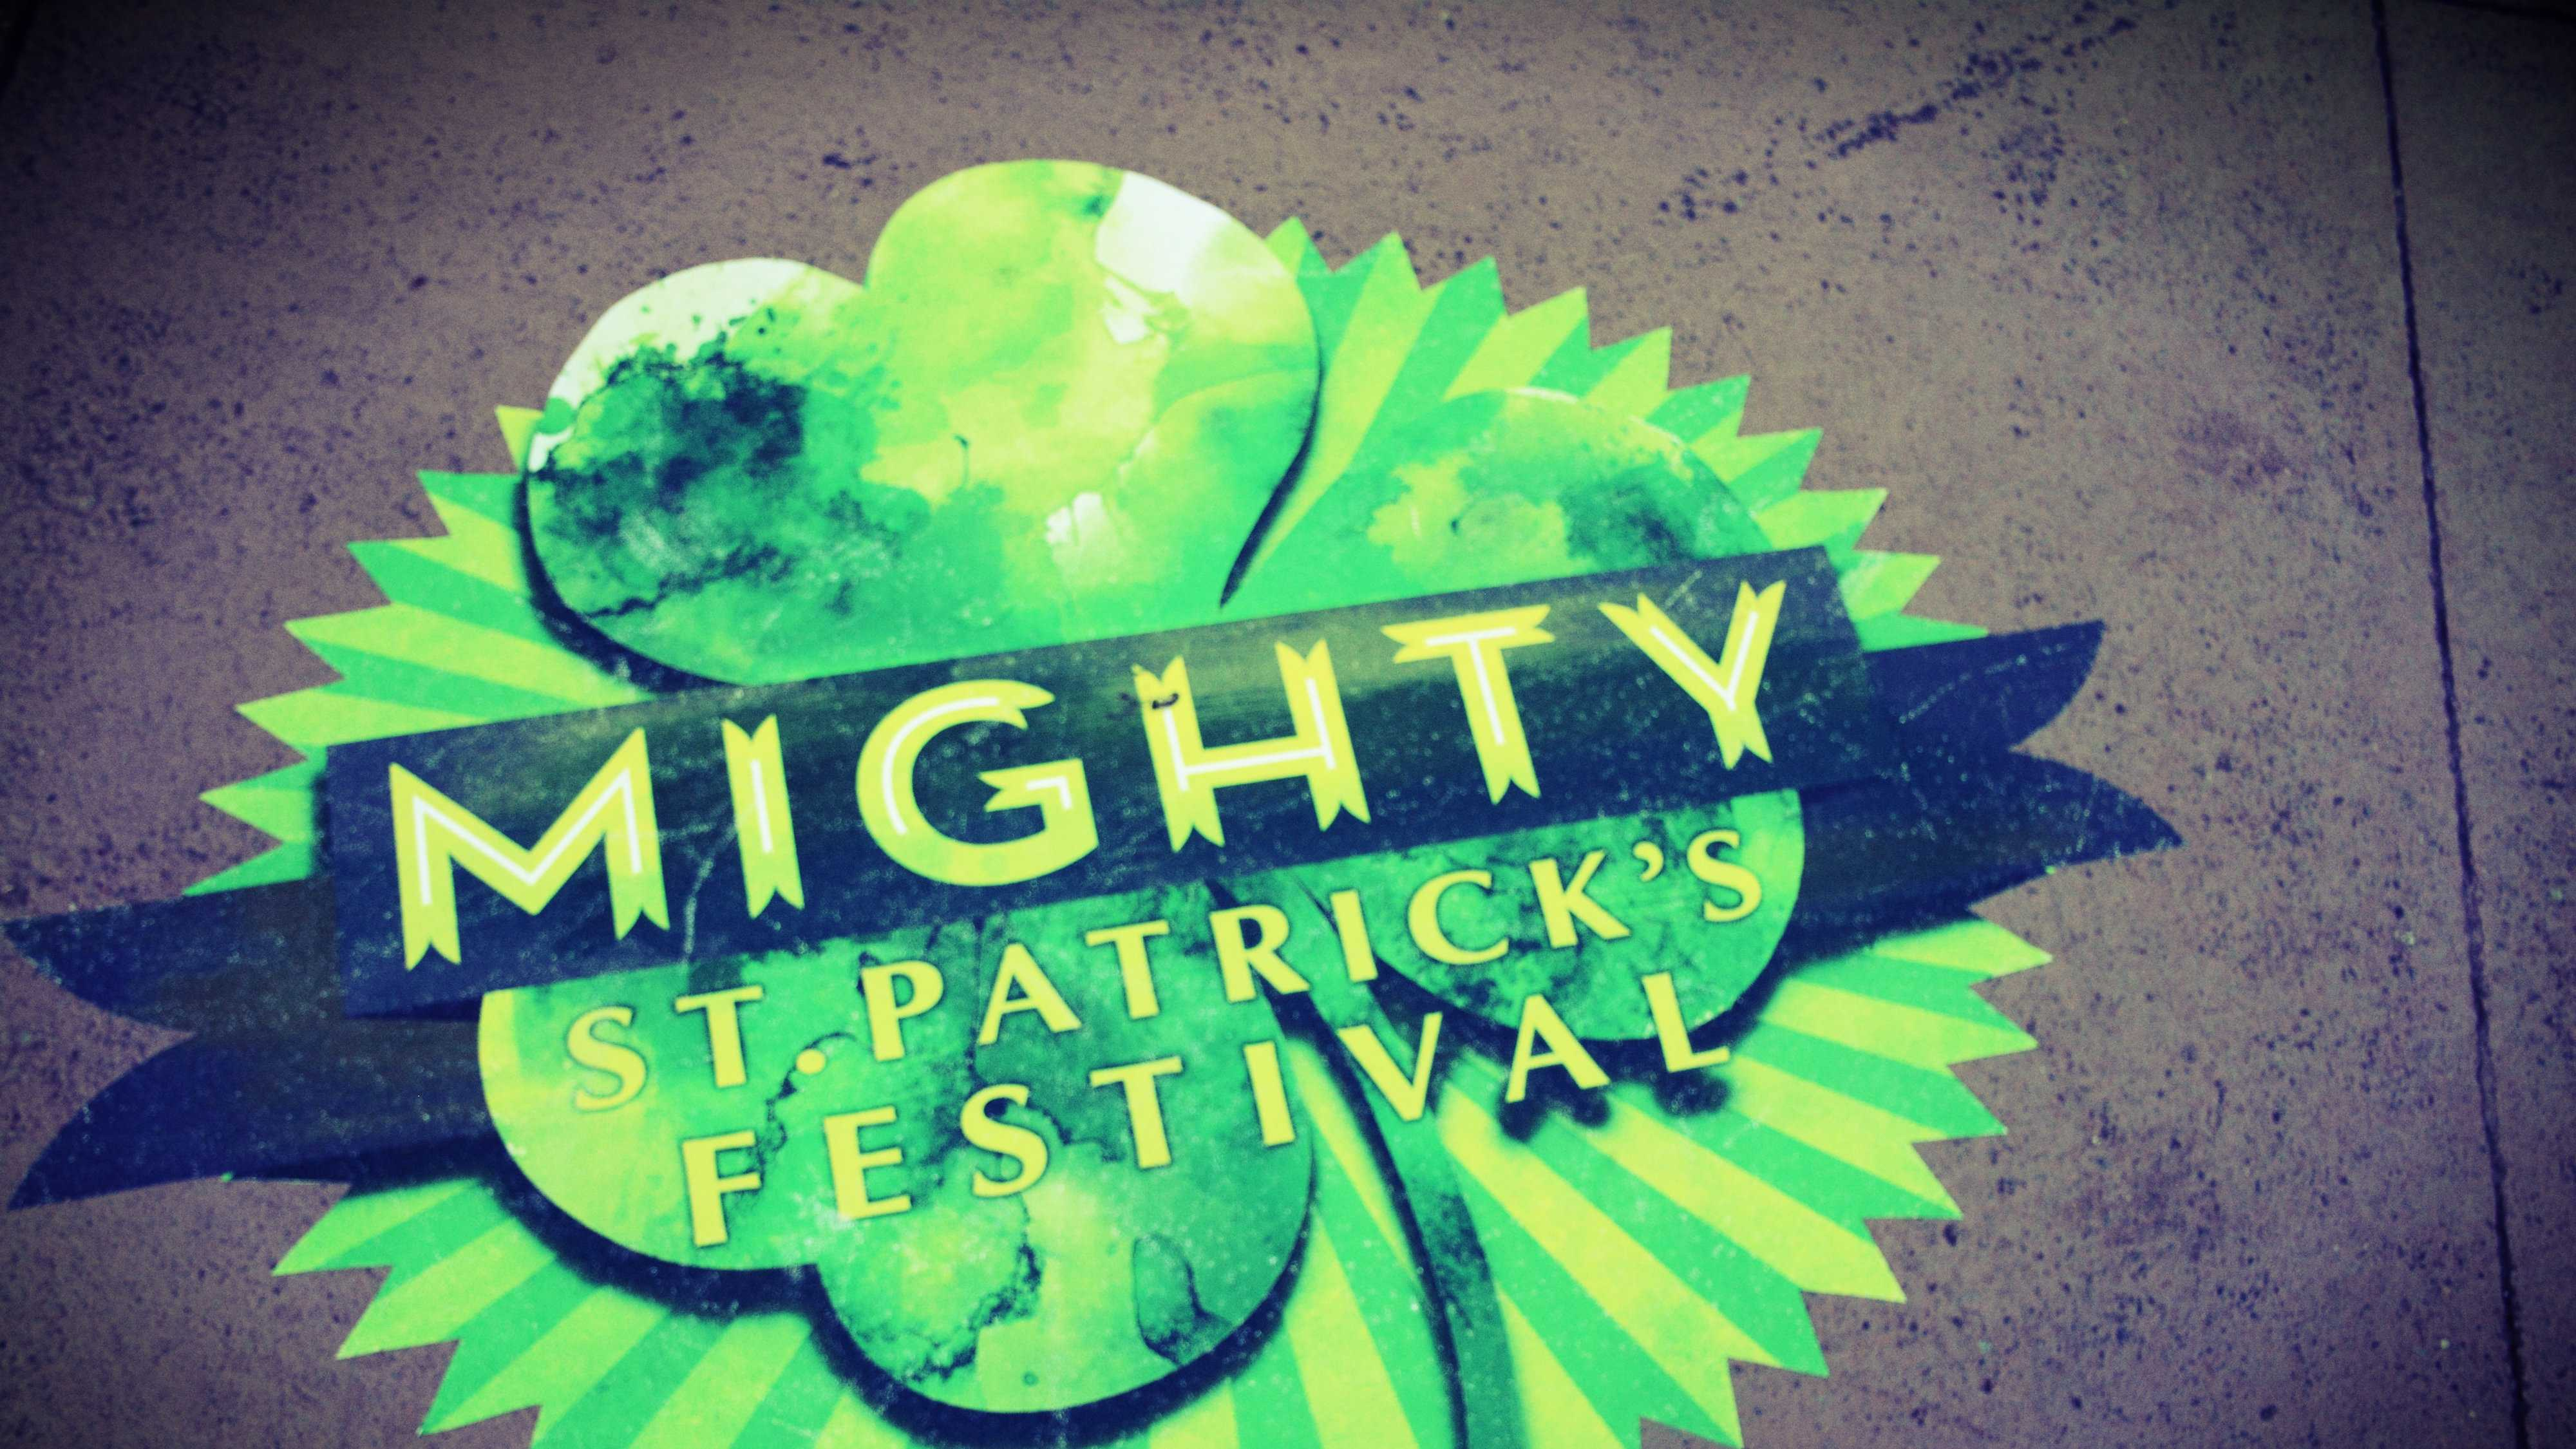 mighty st pattys day festival .jpg